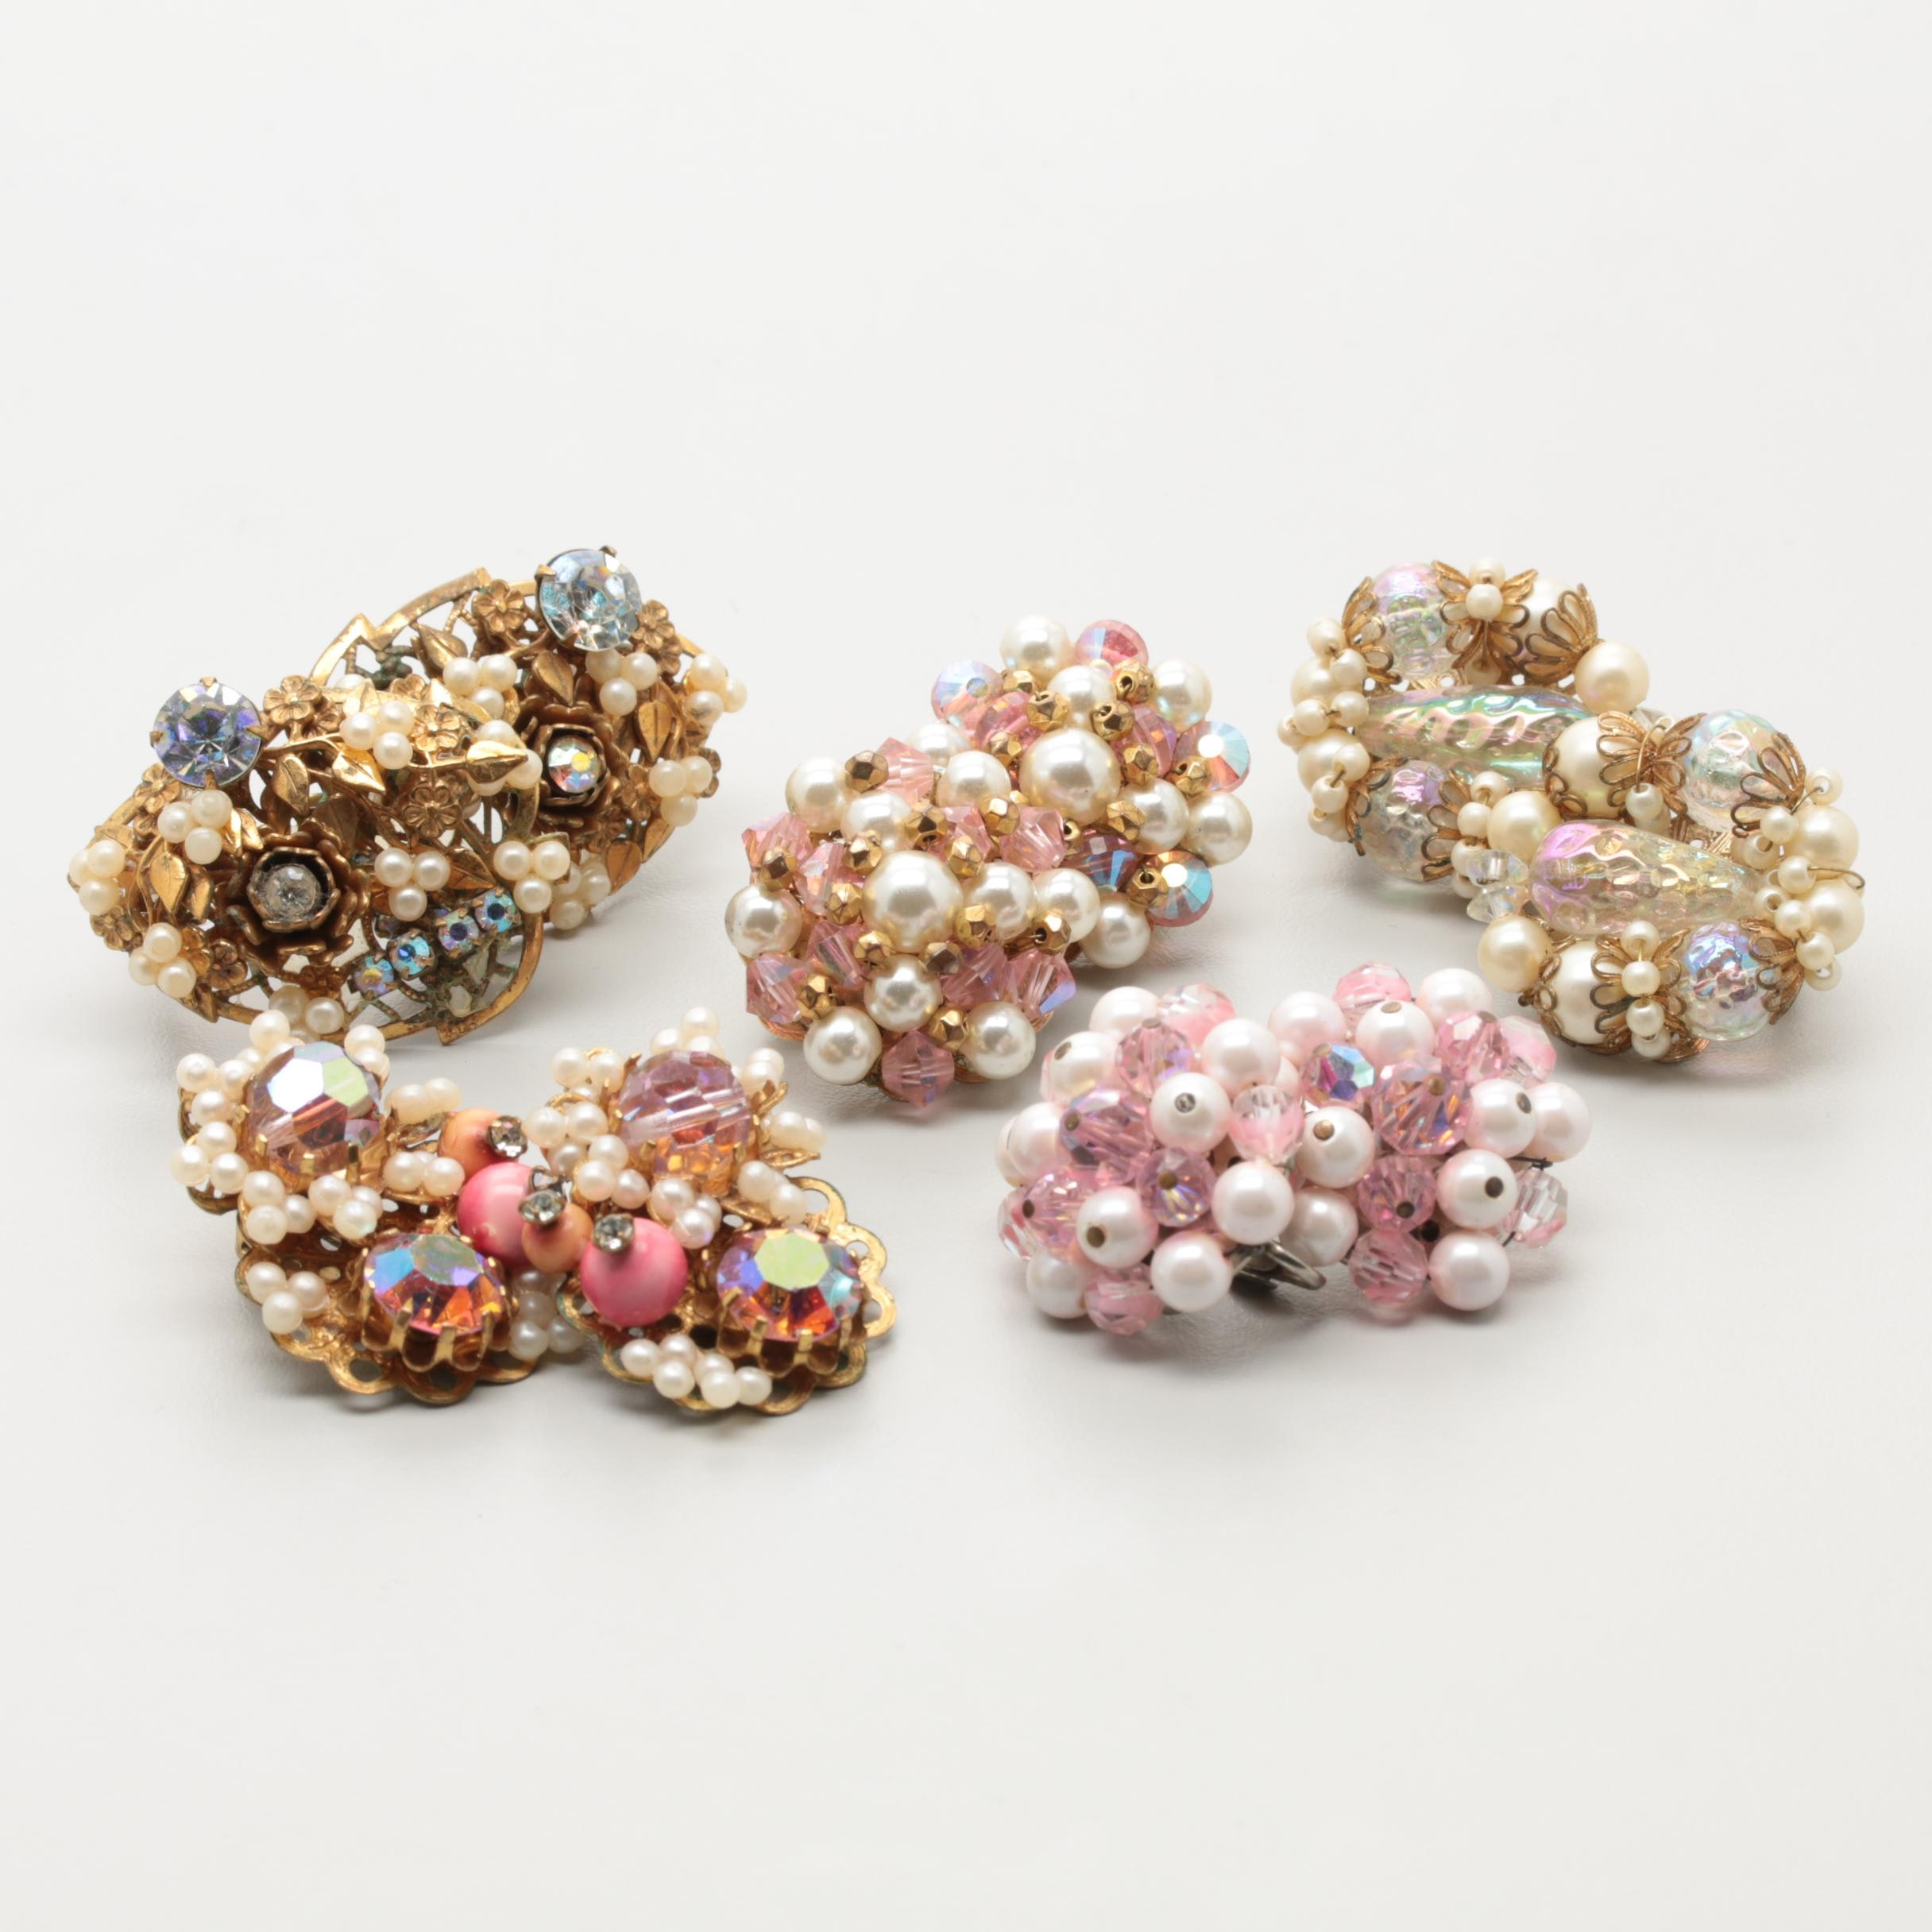 Collection of 1960s Beaded Rhinestone Earrings Including Hobé and Laguna